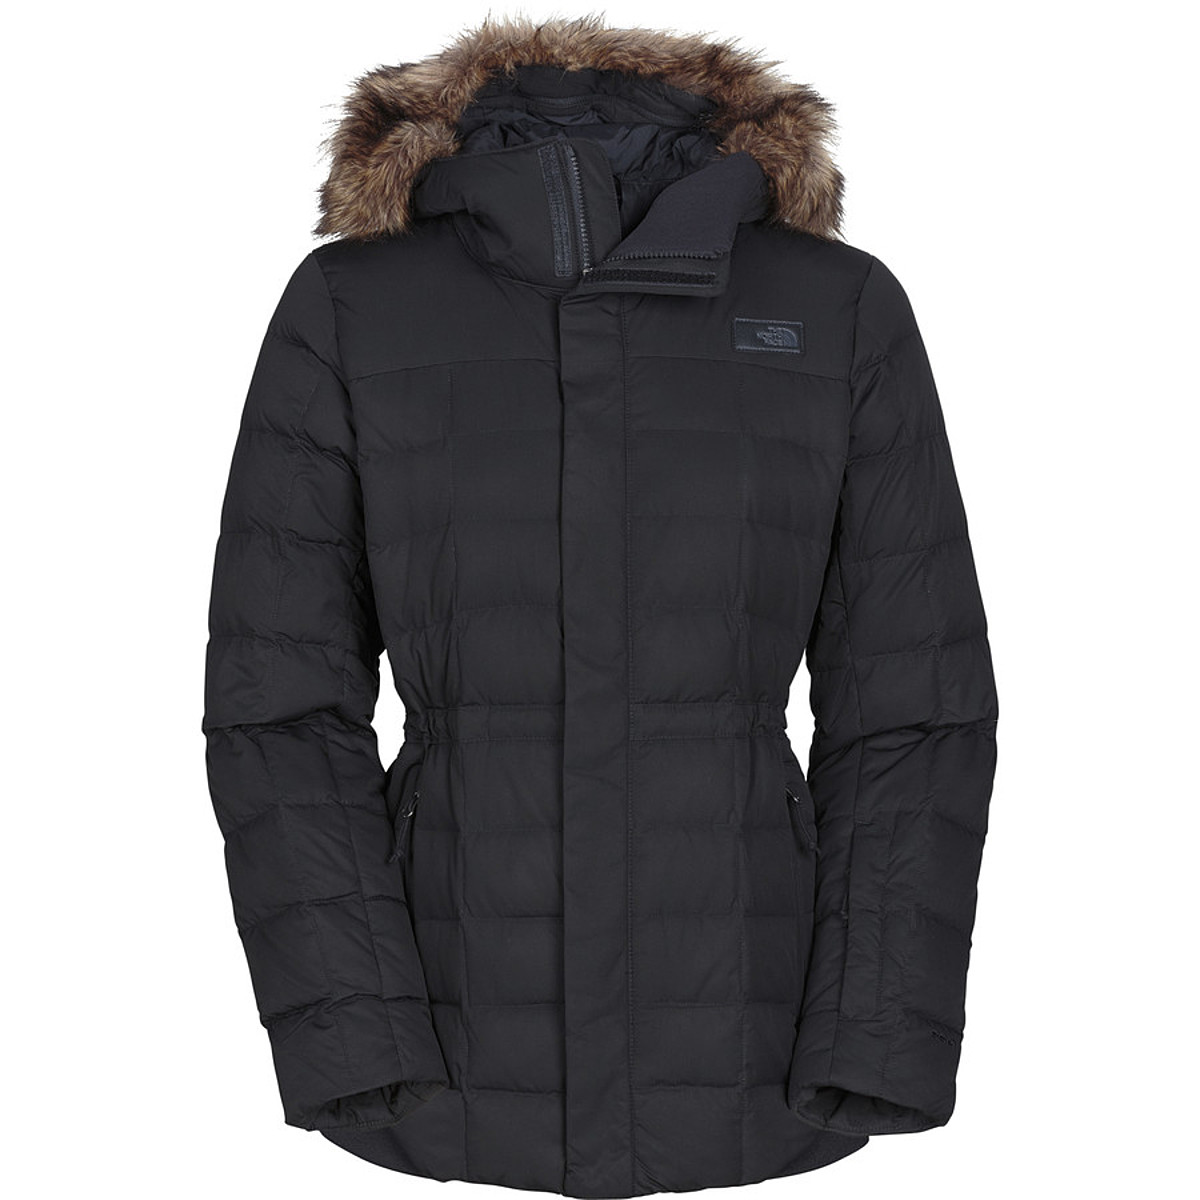 The North Face Beatty Deluxe Insulated Jacket